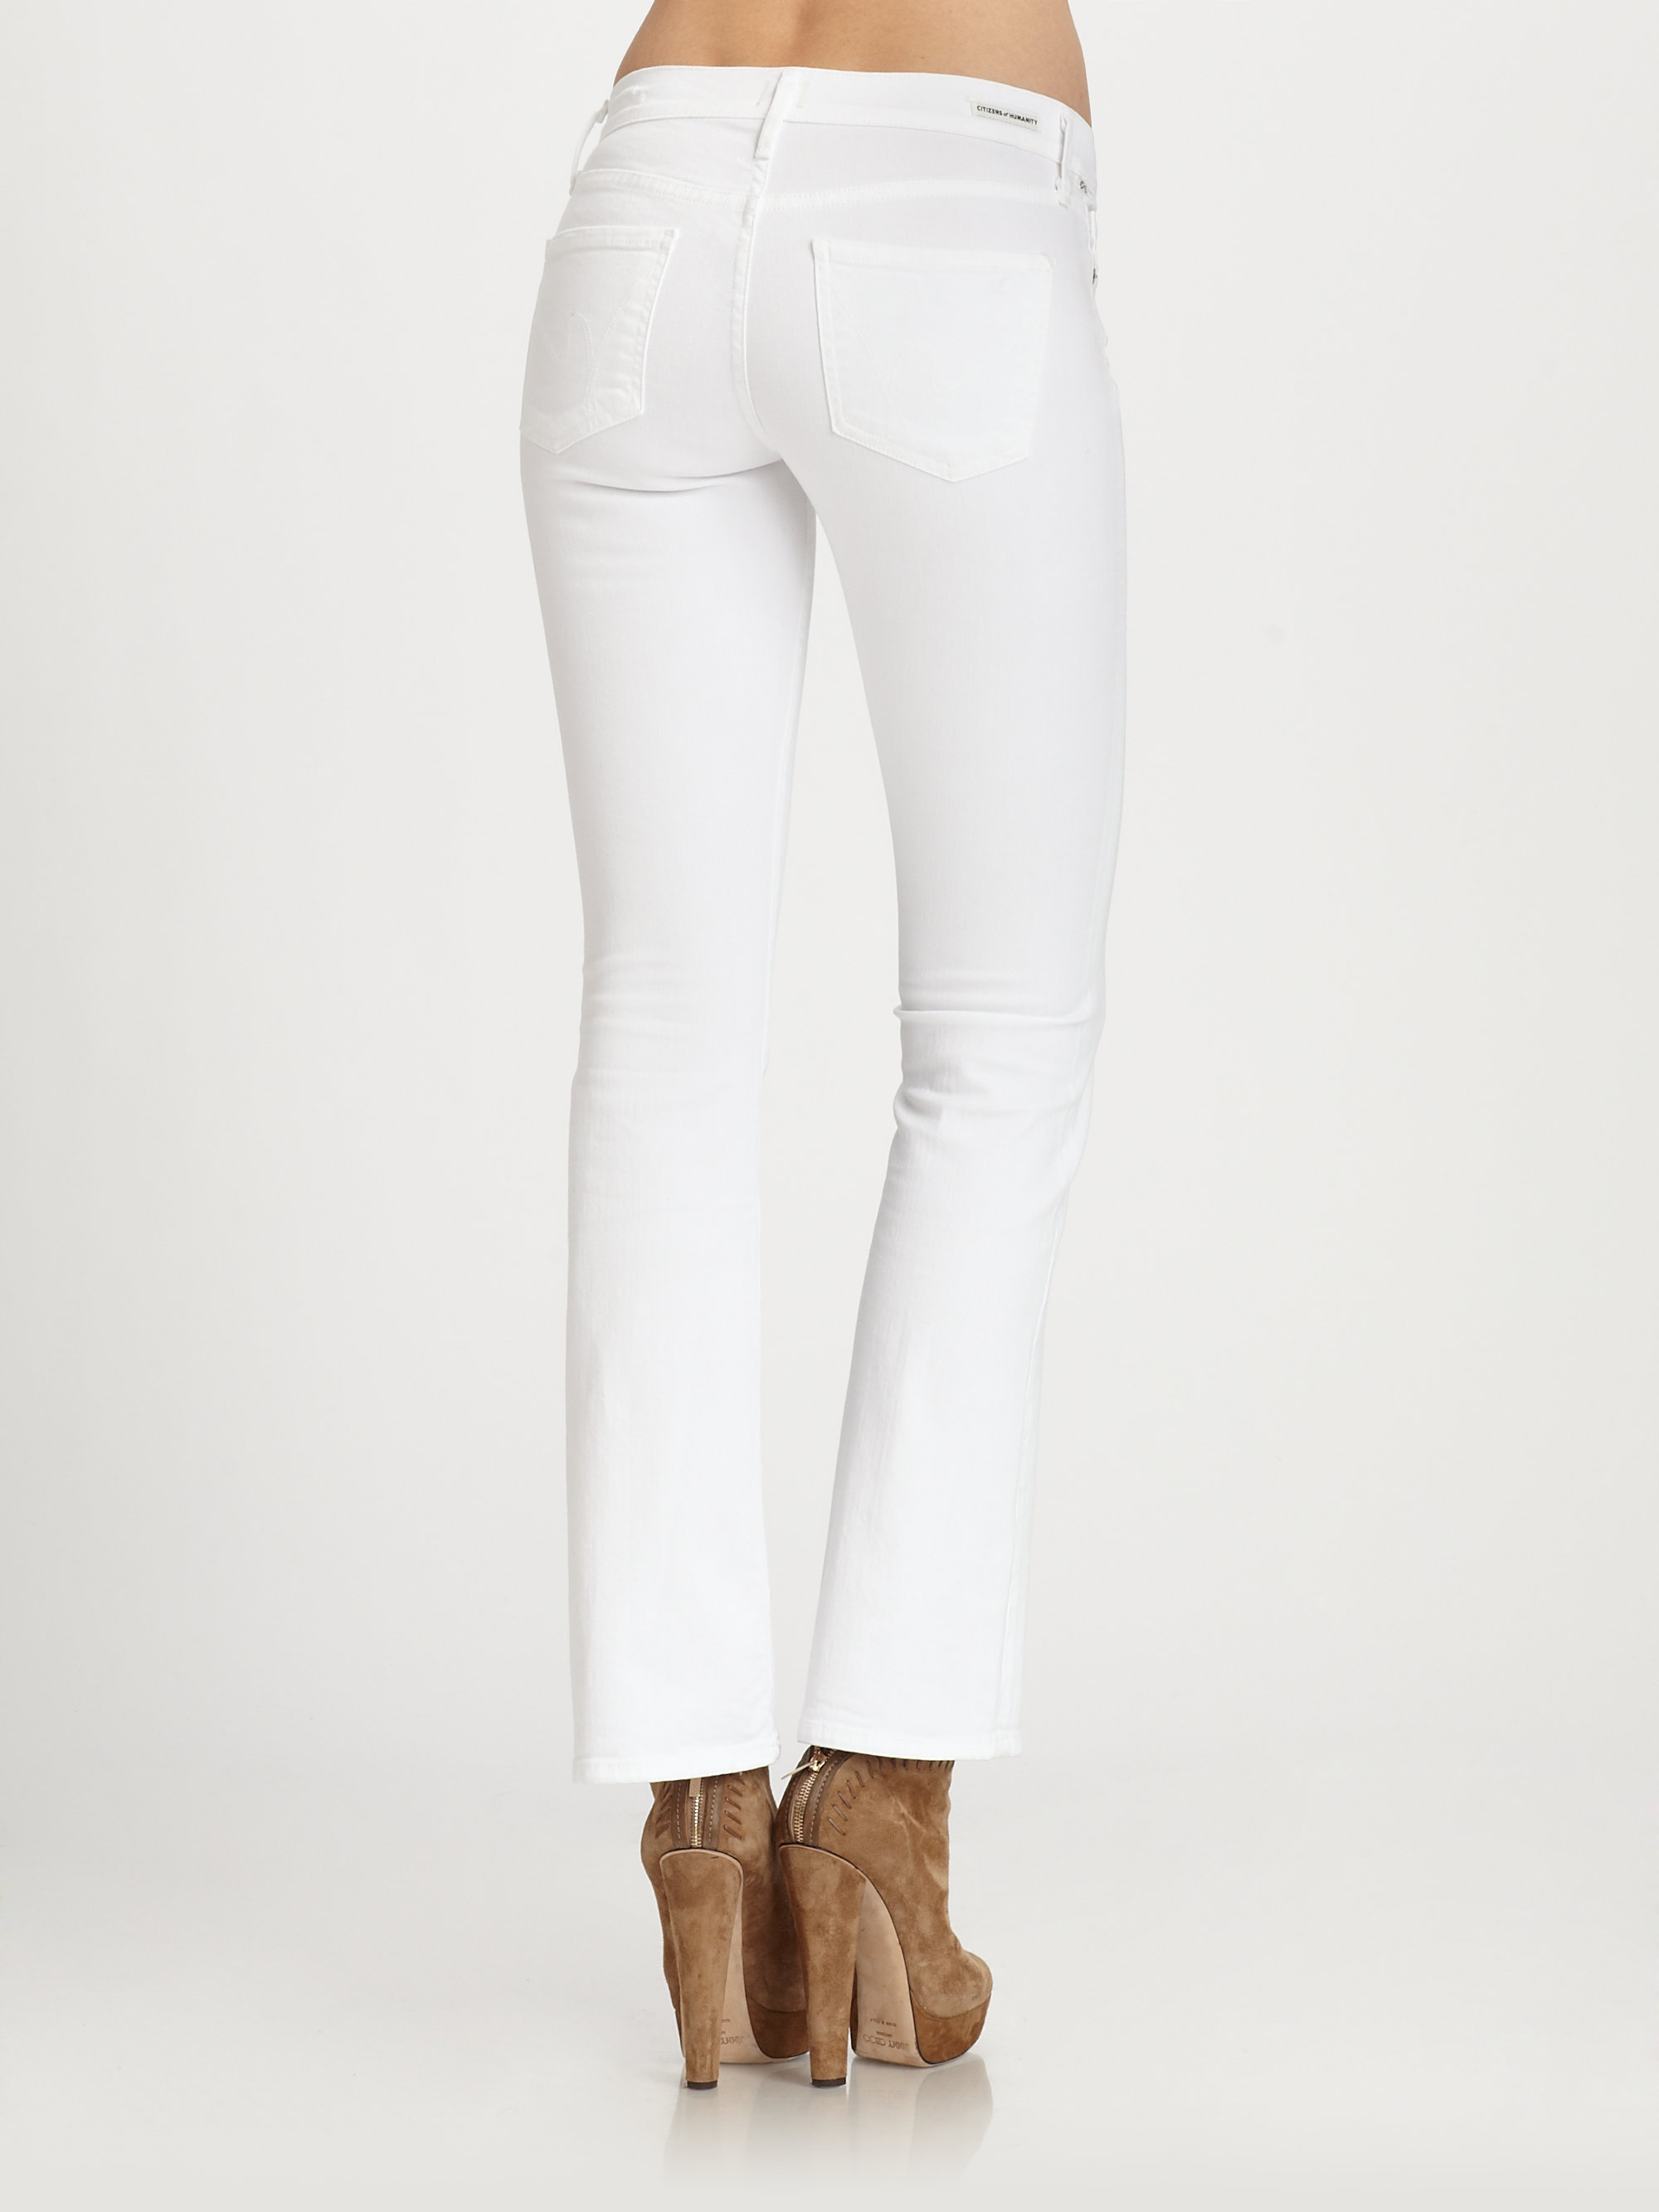 97c264939b6 Citizens of Humanity Dita Petite Bootcut Jeans in White - Lyst